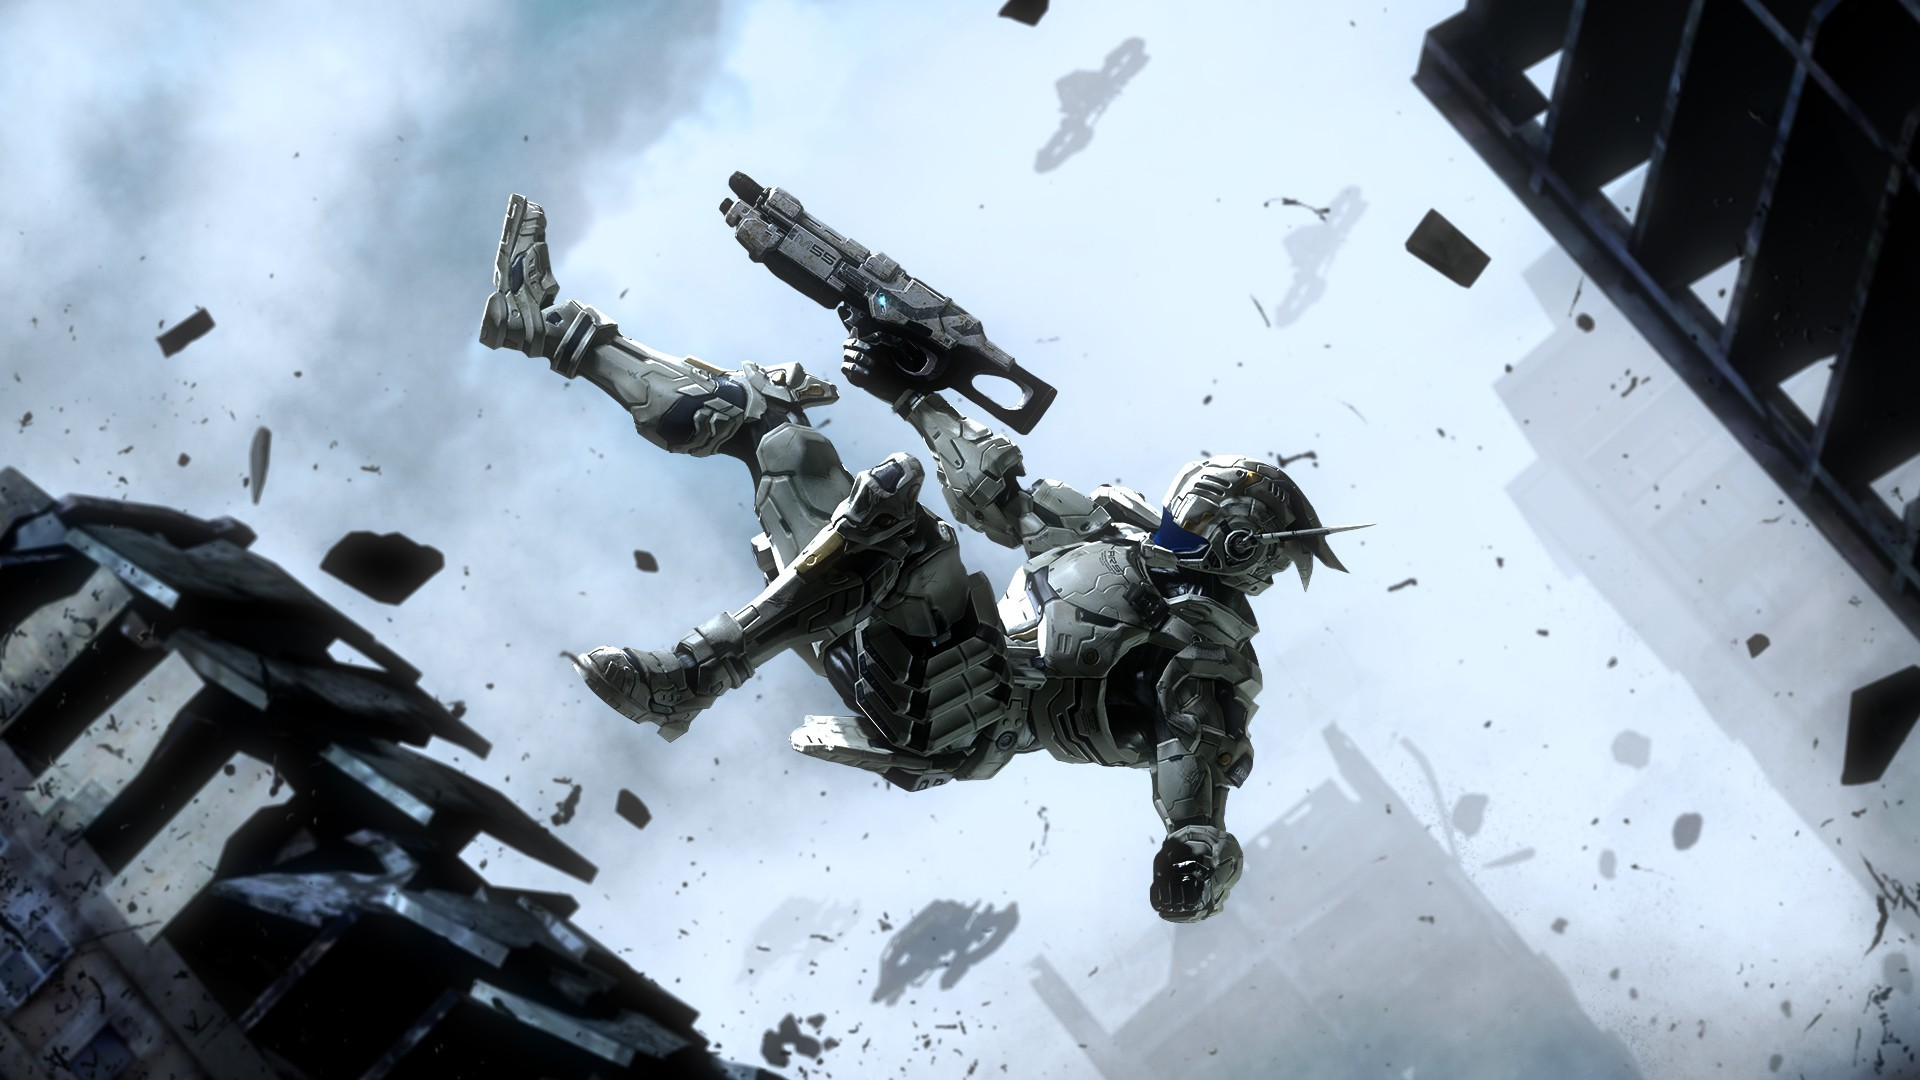 Vanquish armor artwork fantasy art freefall wallpaper ...